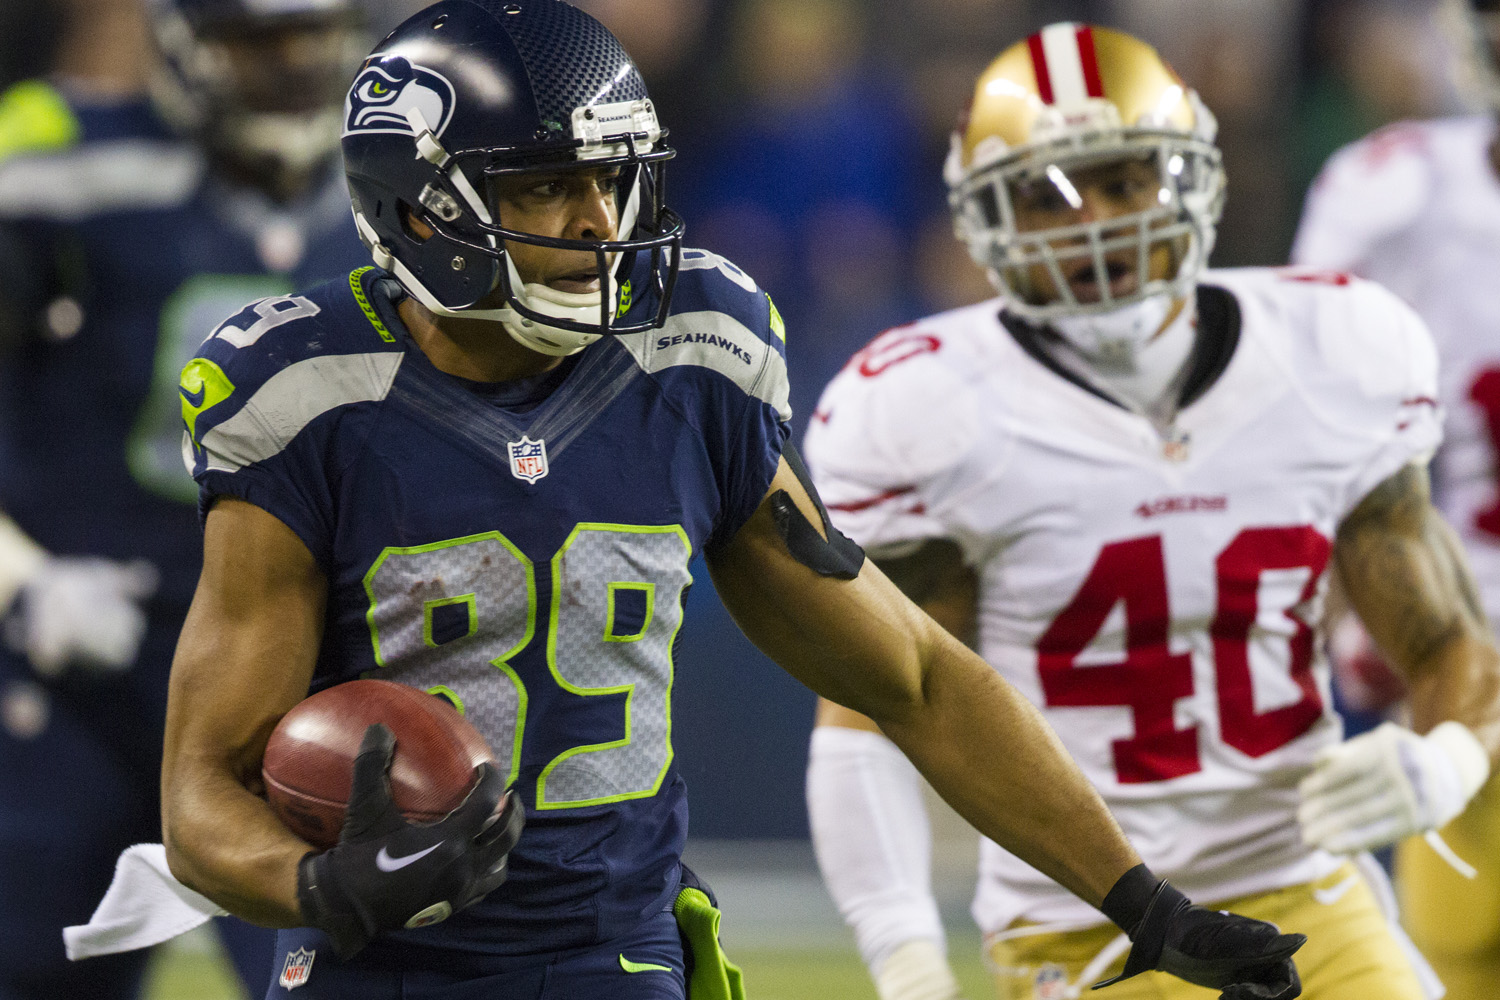 San Francisco 49ers vs. Seattle Seahawks